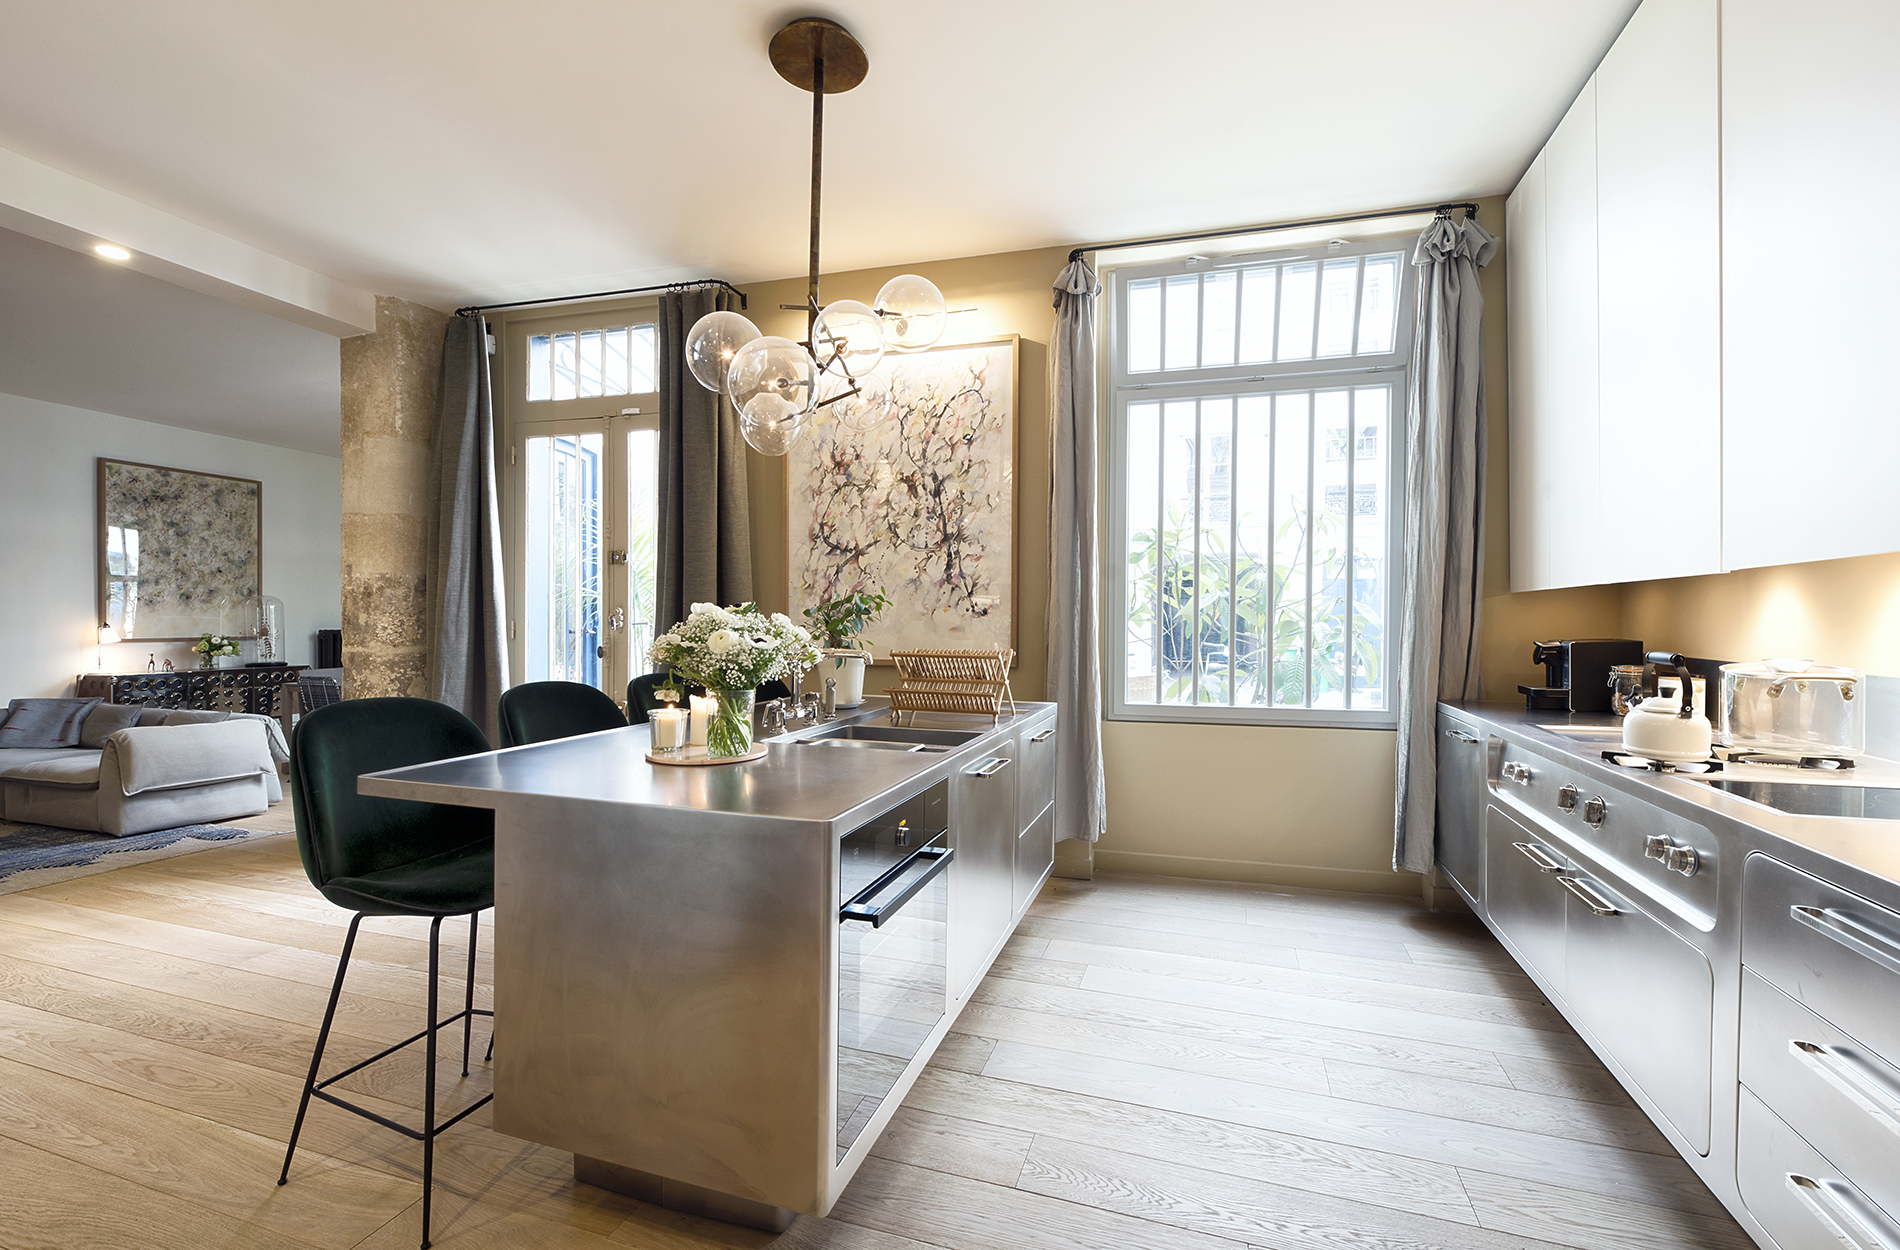 Mid-Century Lighting Brings Life to Apartment in Romantic Paris mid-century lighting Mid-Century Lighting Brings Life to Apartment in Romantic Paris Mid Century Lighting Brings Life to Apartment in Romantic Paris 5